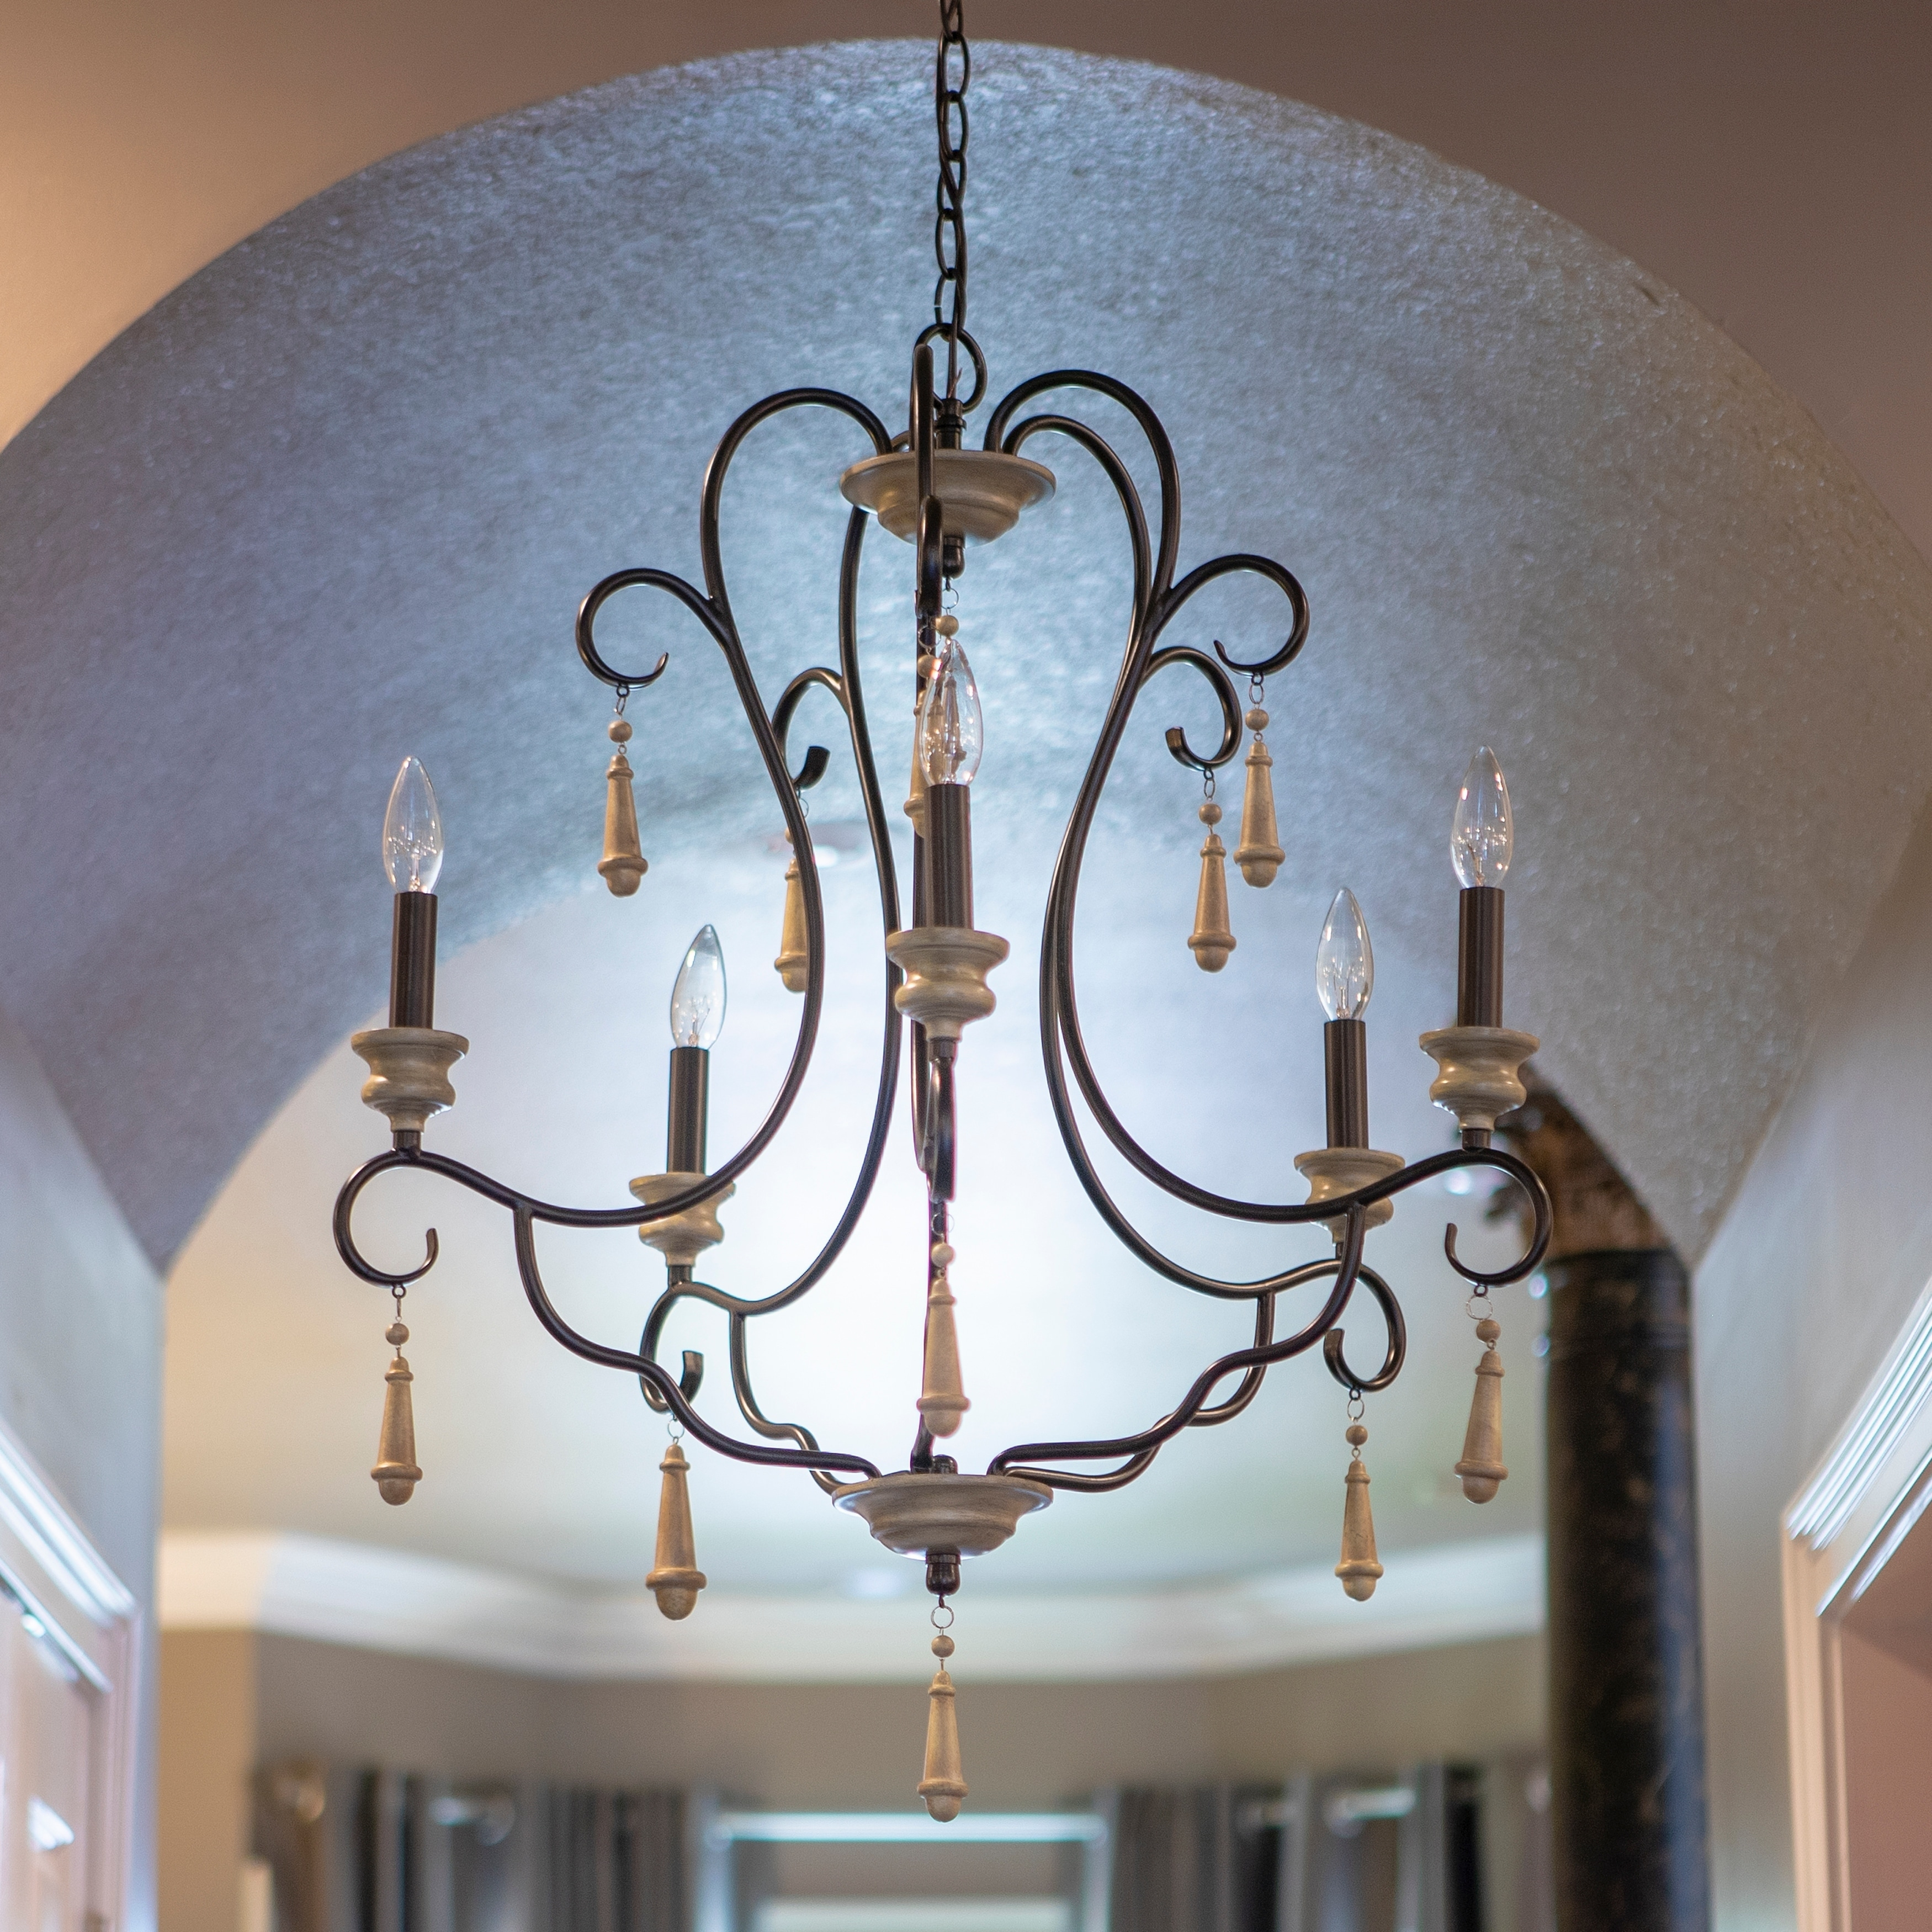 Blakely 5 Light Chandelier In 2019 | Products | Chandelier for Watford 6-Light Candle Style Chandeliers (Image 4 of 30)